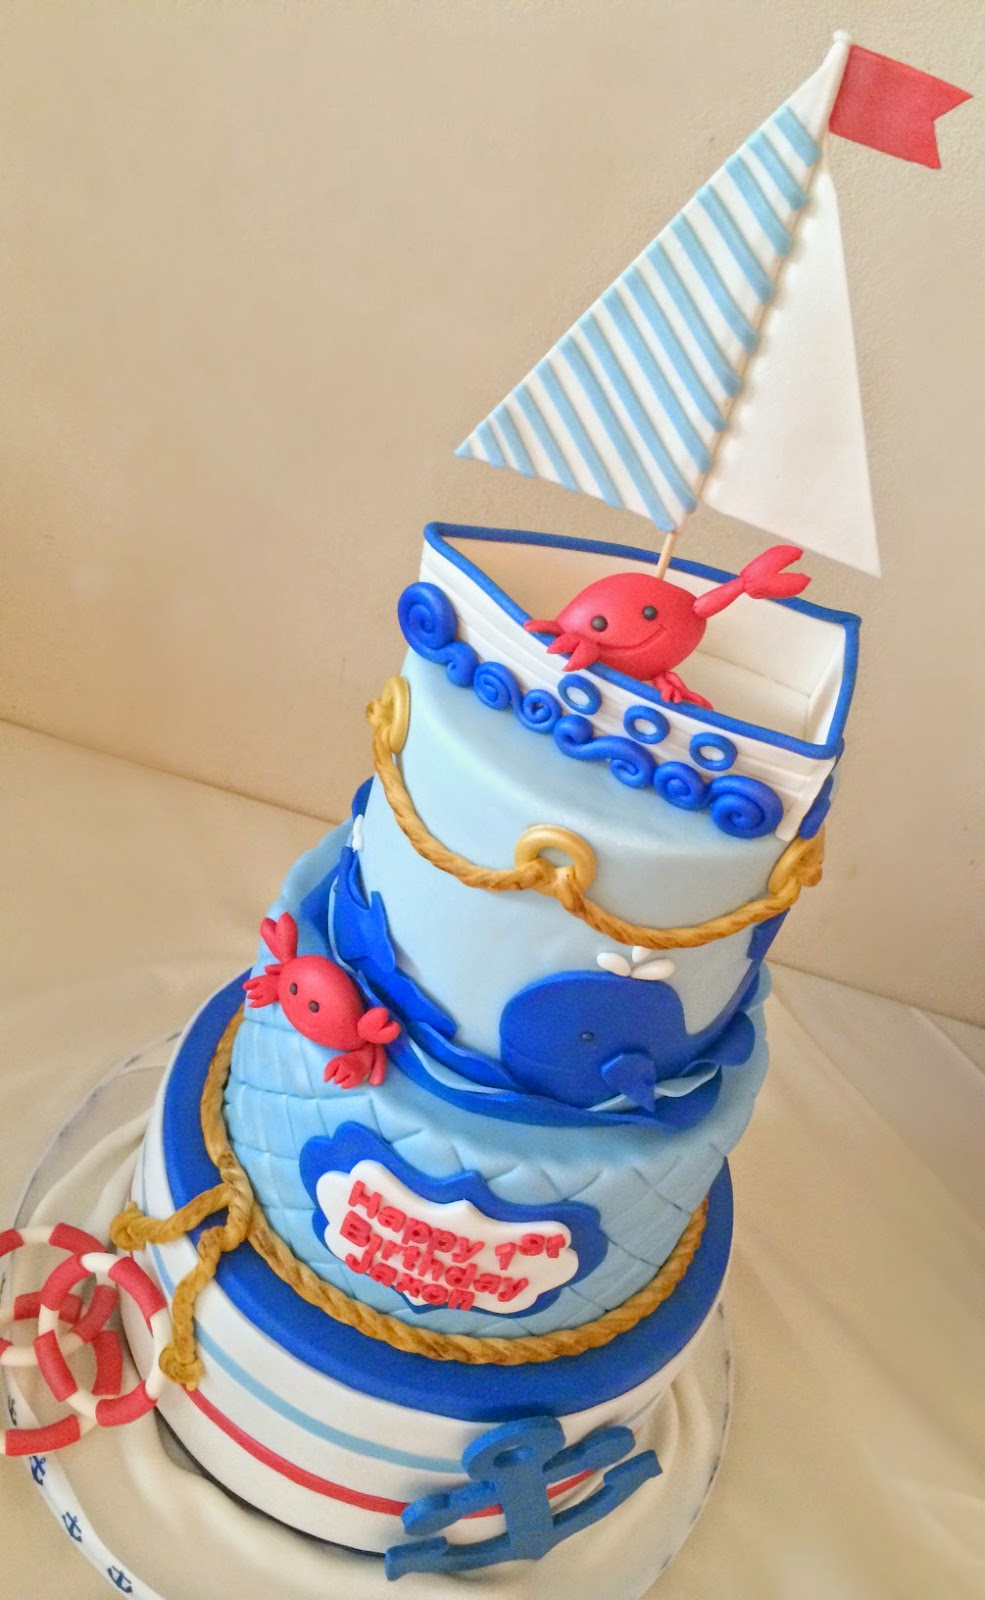 Pink Little Cake Nauticalmini Crab Theme Birthday Cake